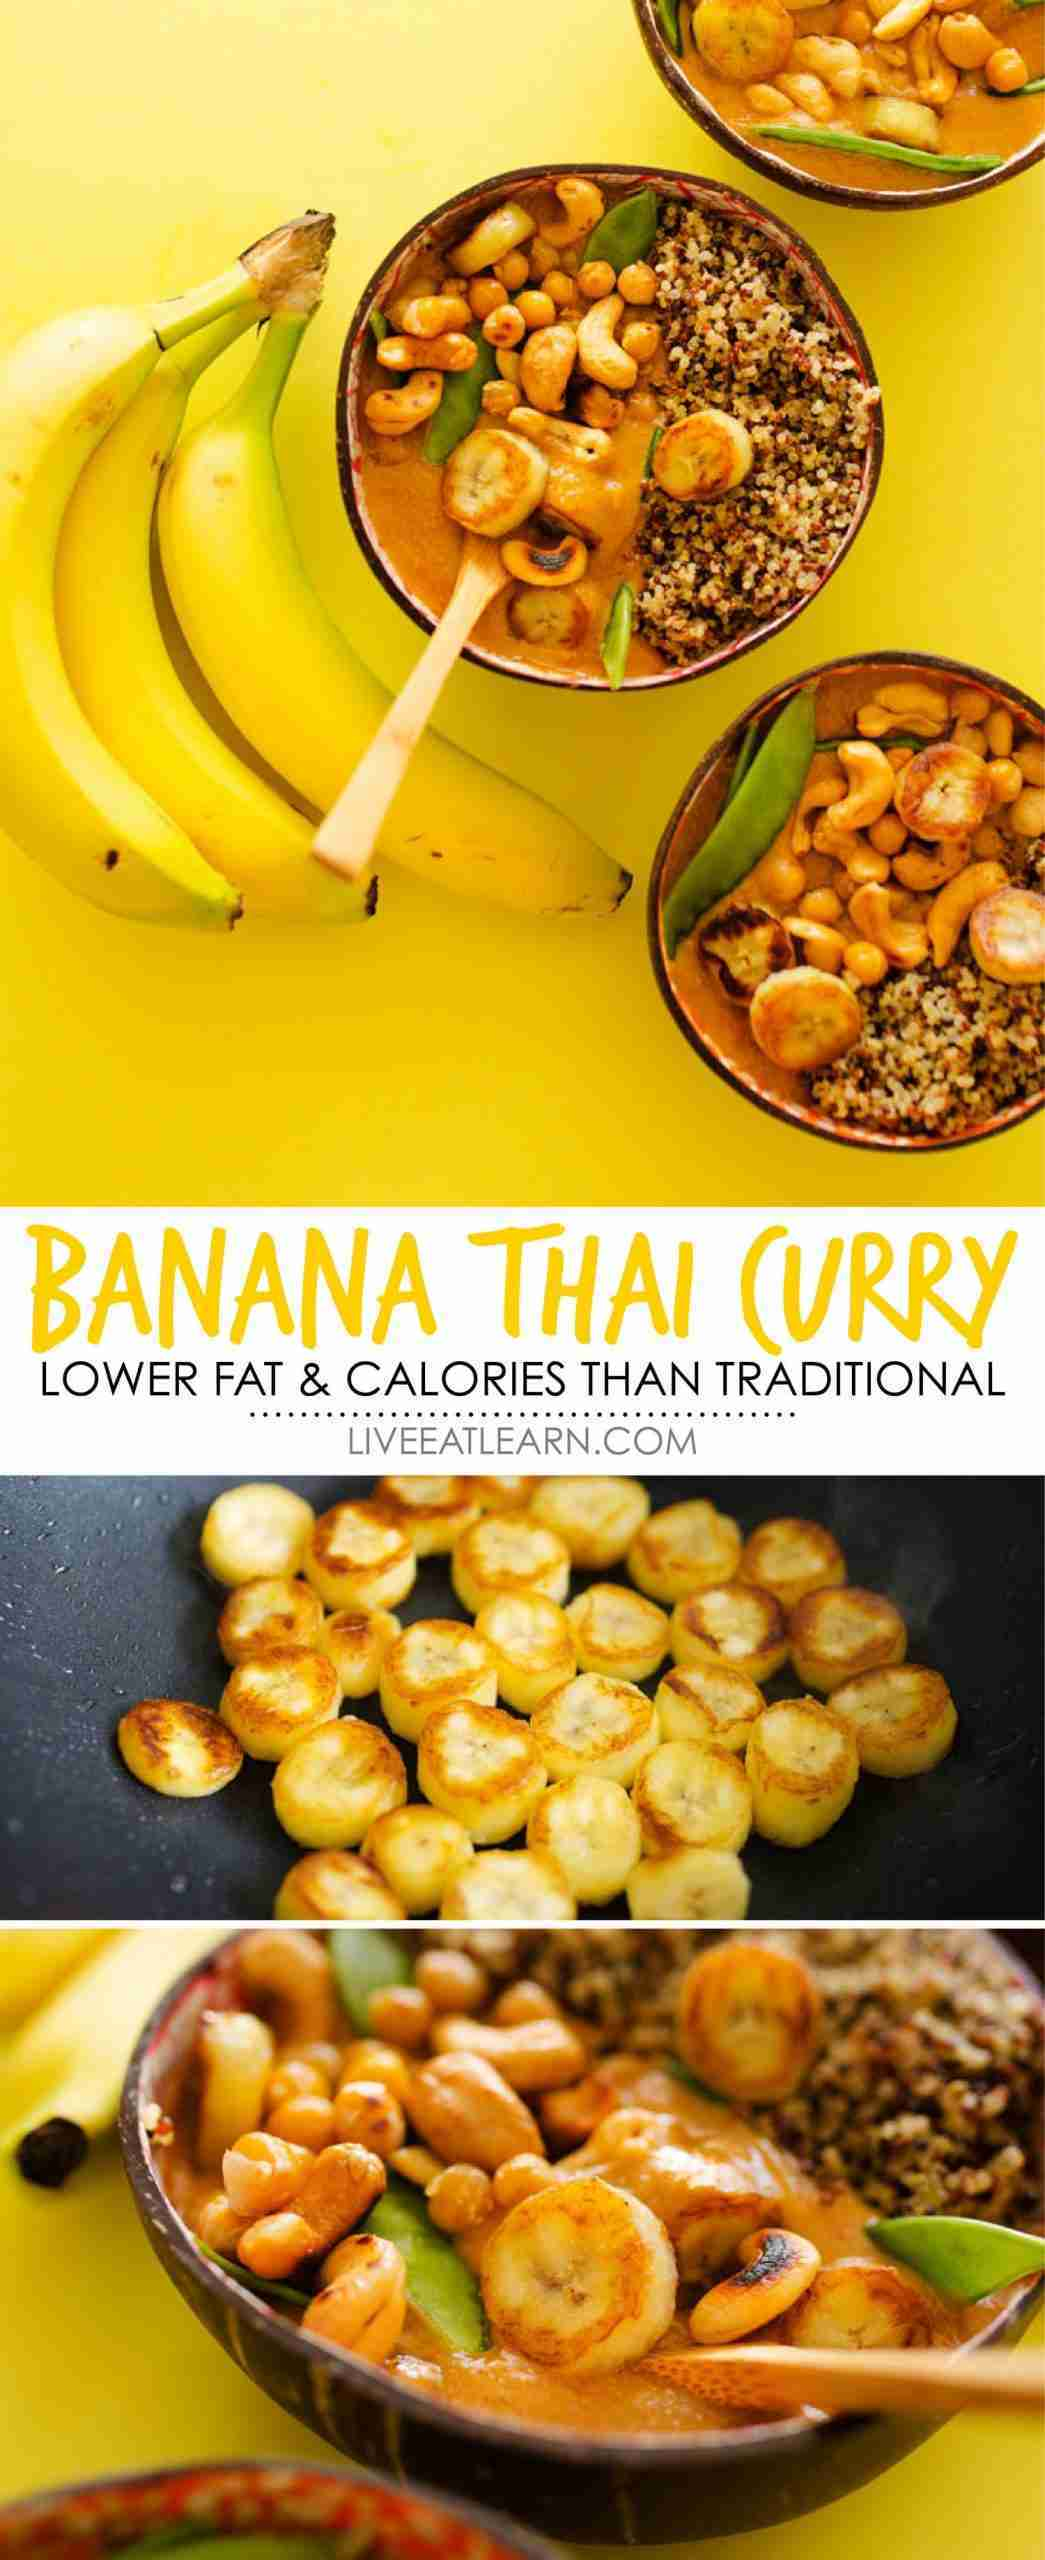 Banana Curry (Spicy Thai Style with Red Lentils)